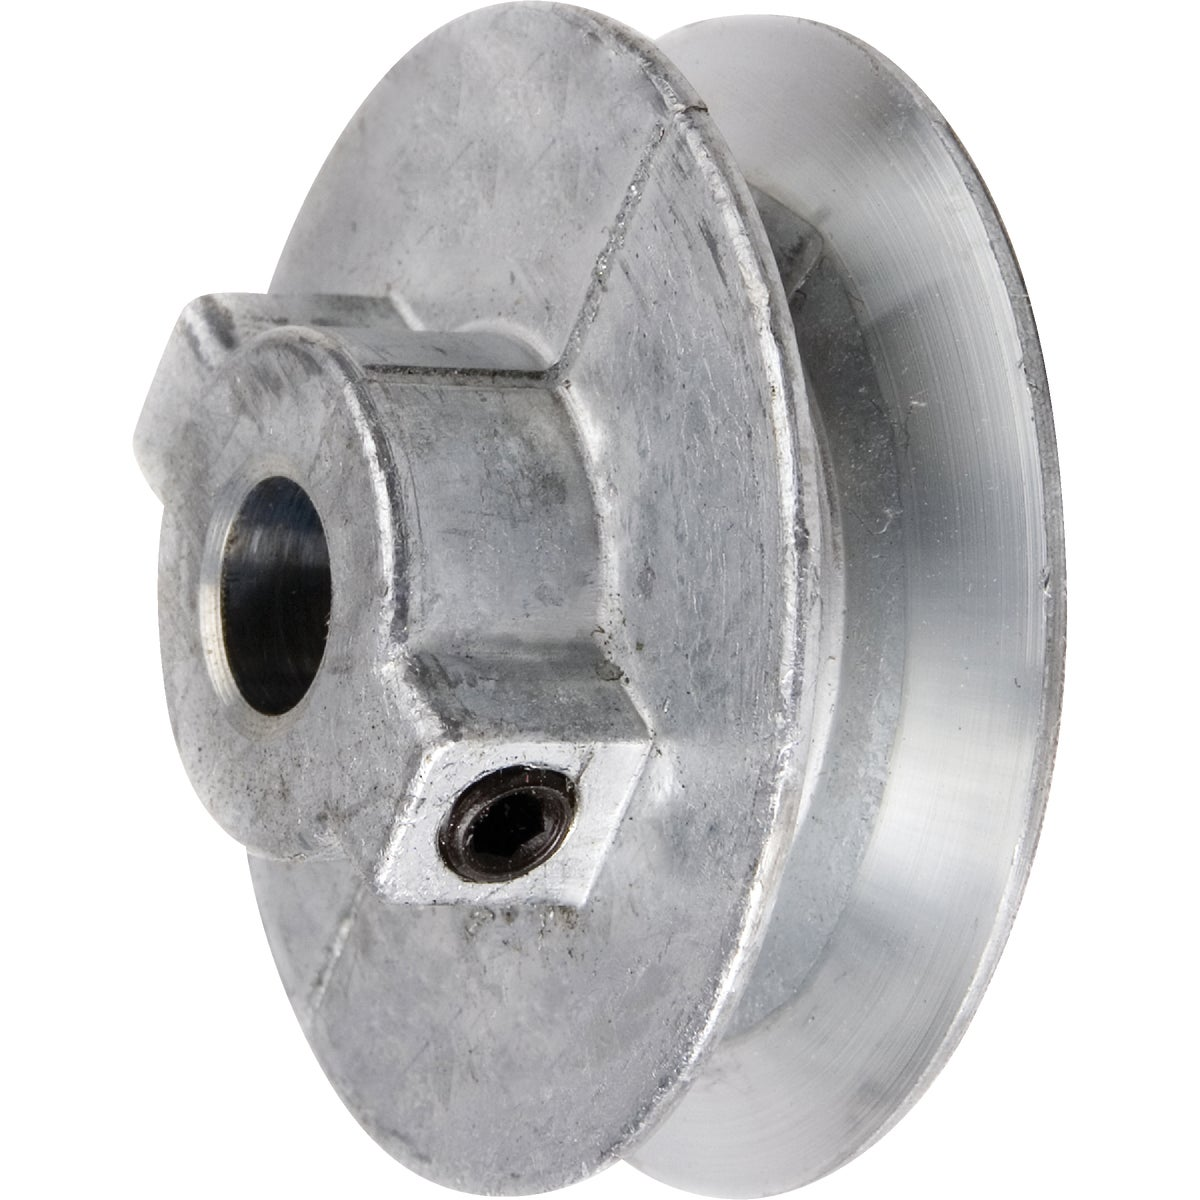 3X3/4 PULLEY - 300A7 by Chicago Die Casting